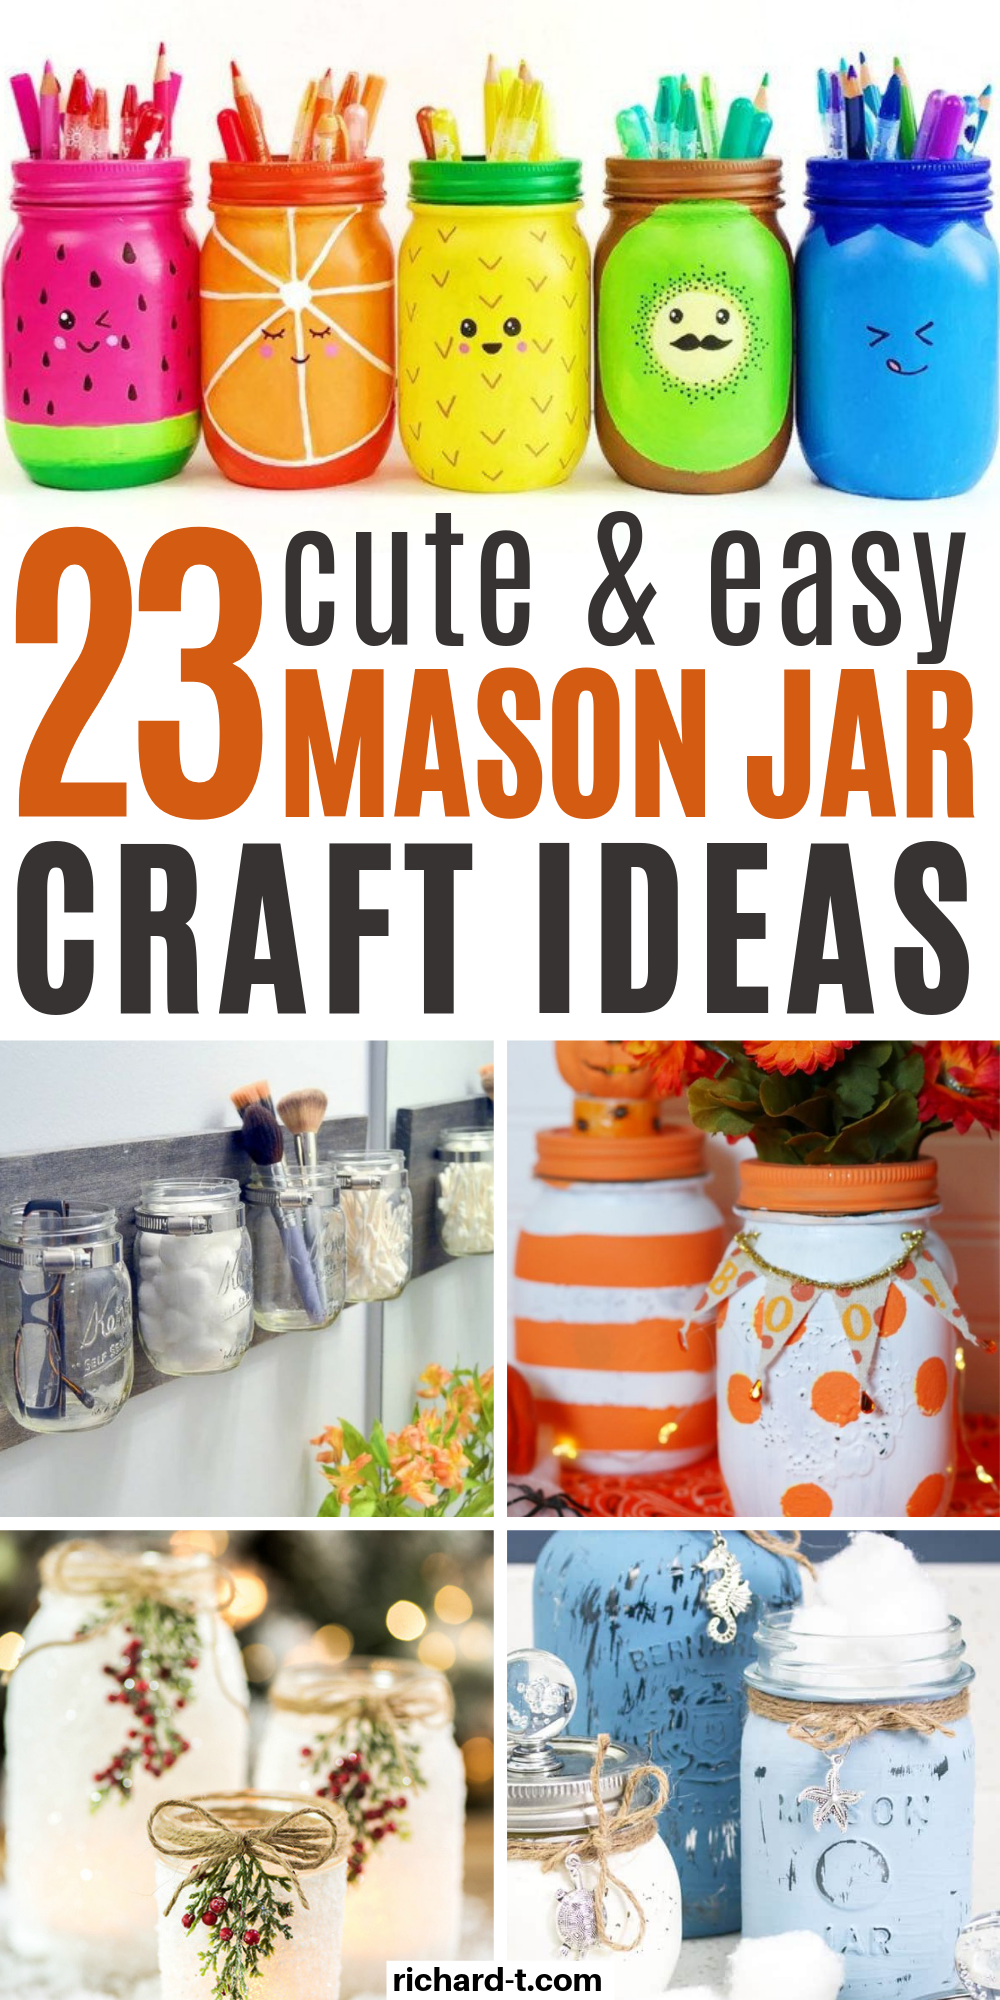 23 Easy Diy Mason Jar Crafts That Look Spectacular With Images